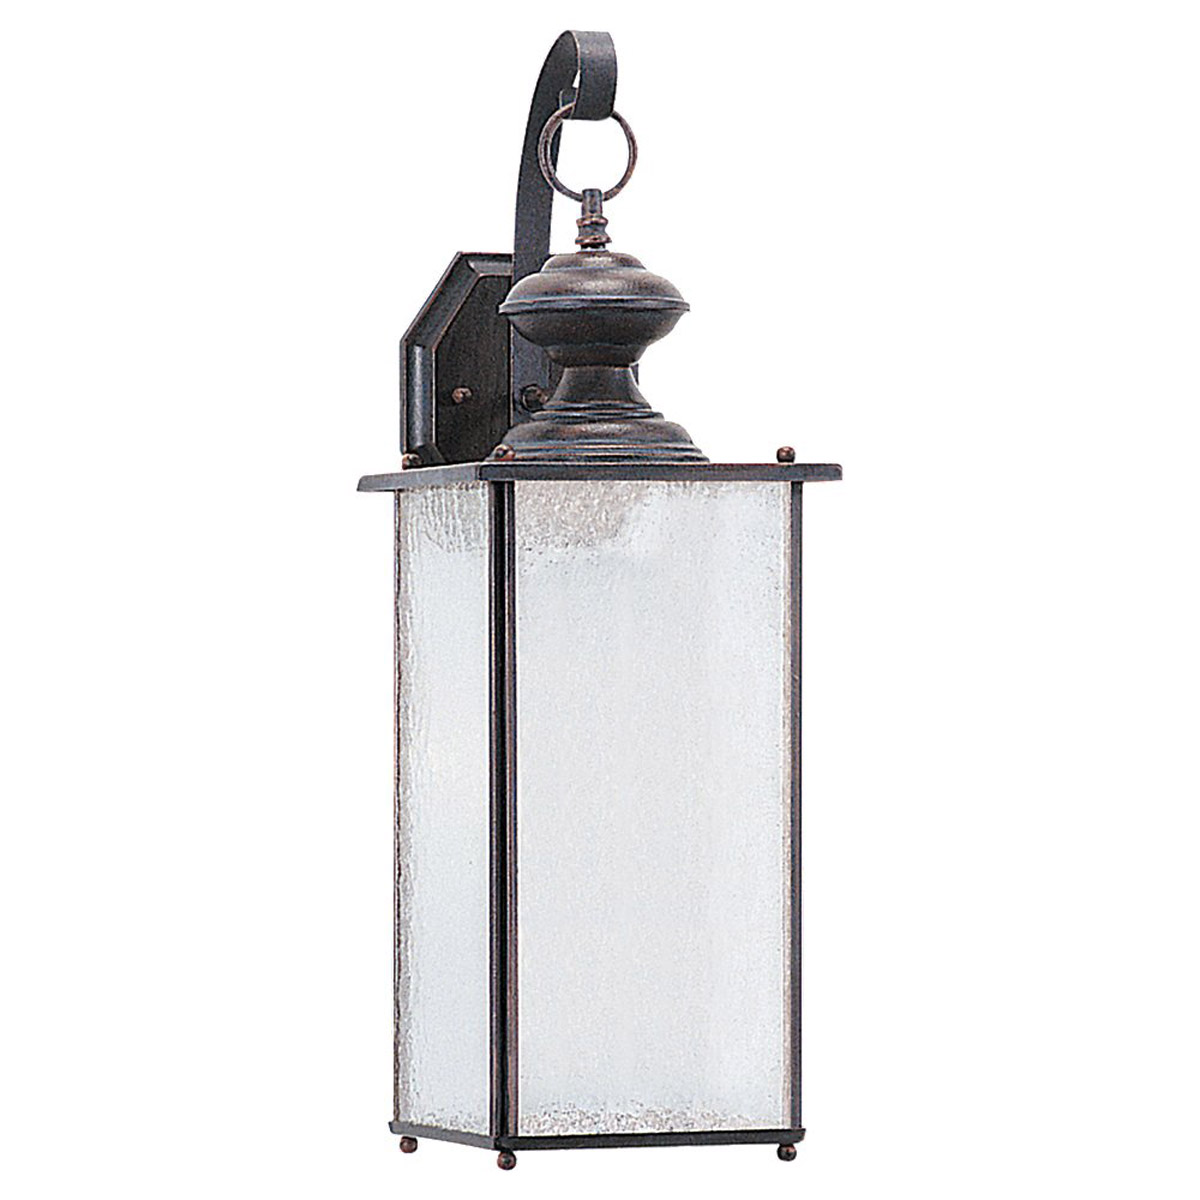 Sea Gull Lighting Jamestowne 1 Light Outdoor Wall Lantern in Textured Rust Patina 89383BLE-08 photo